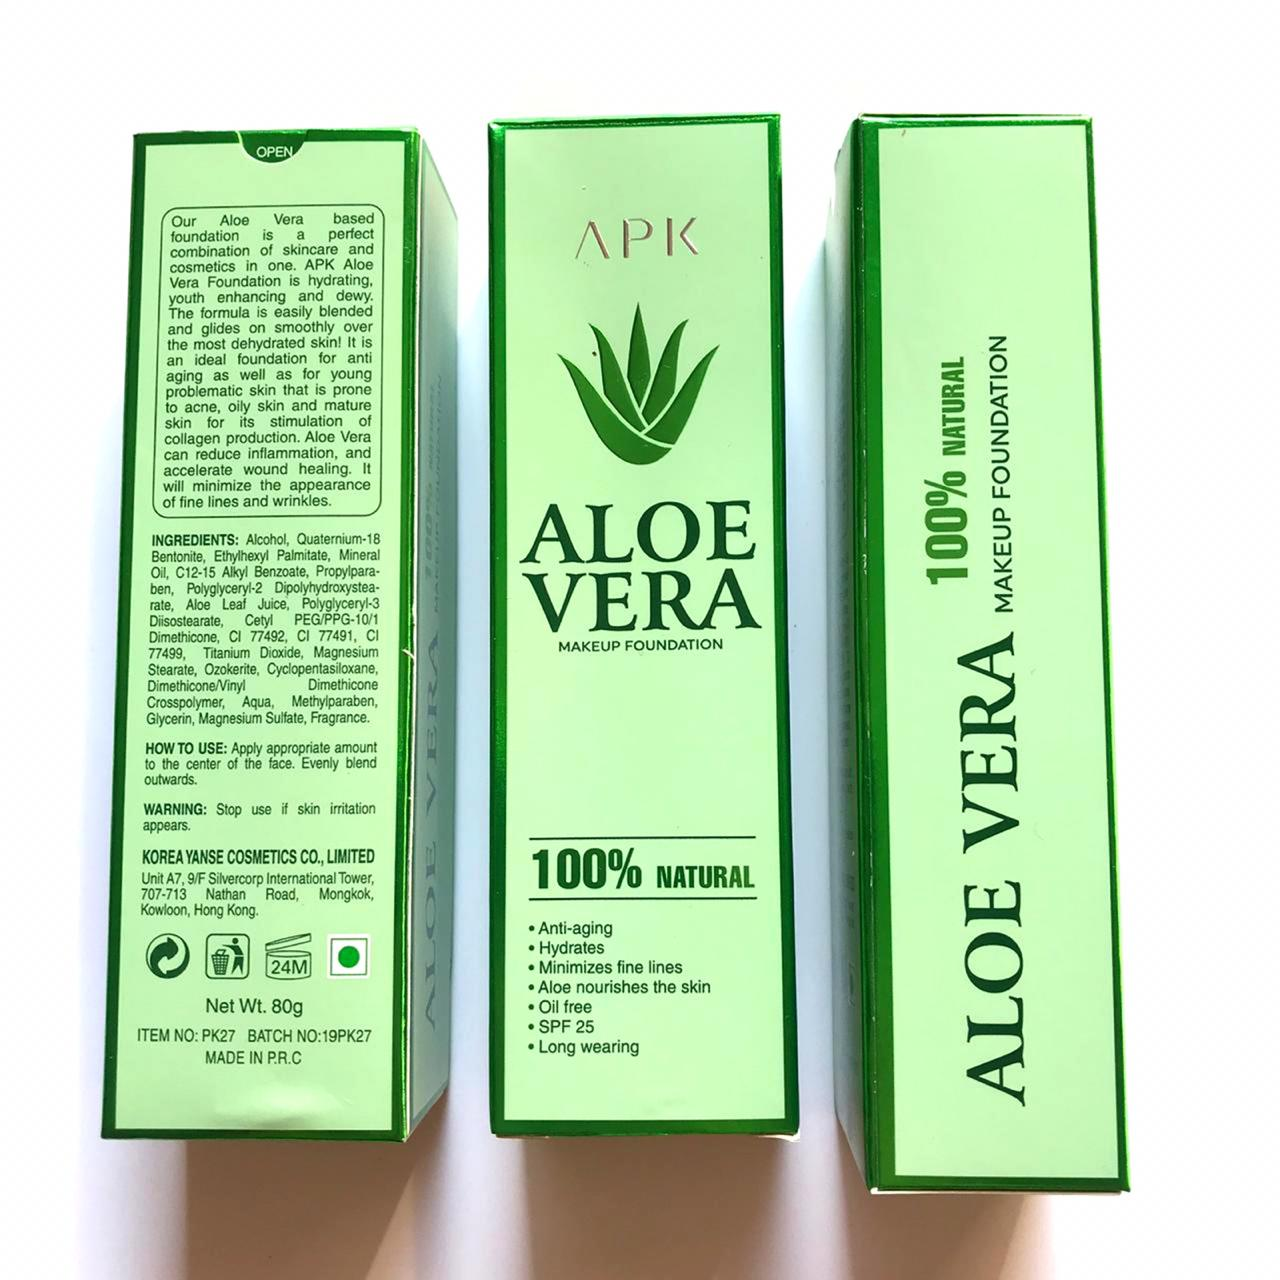 APK Original Aloe Vera foundation